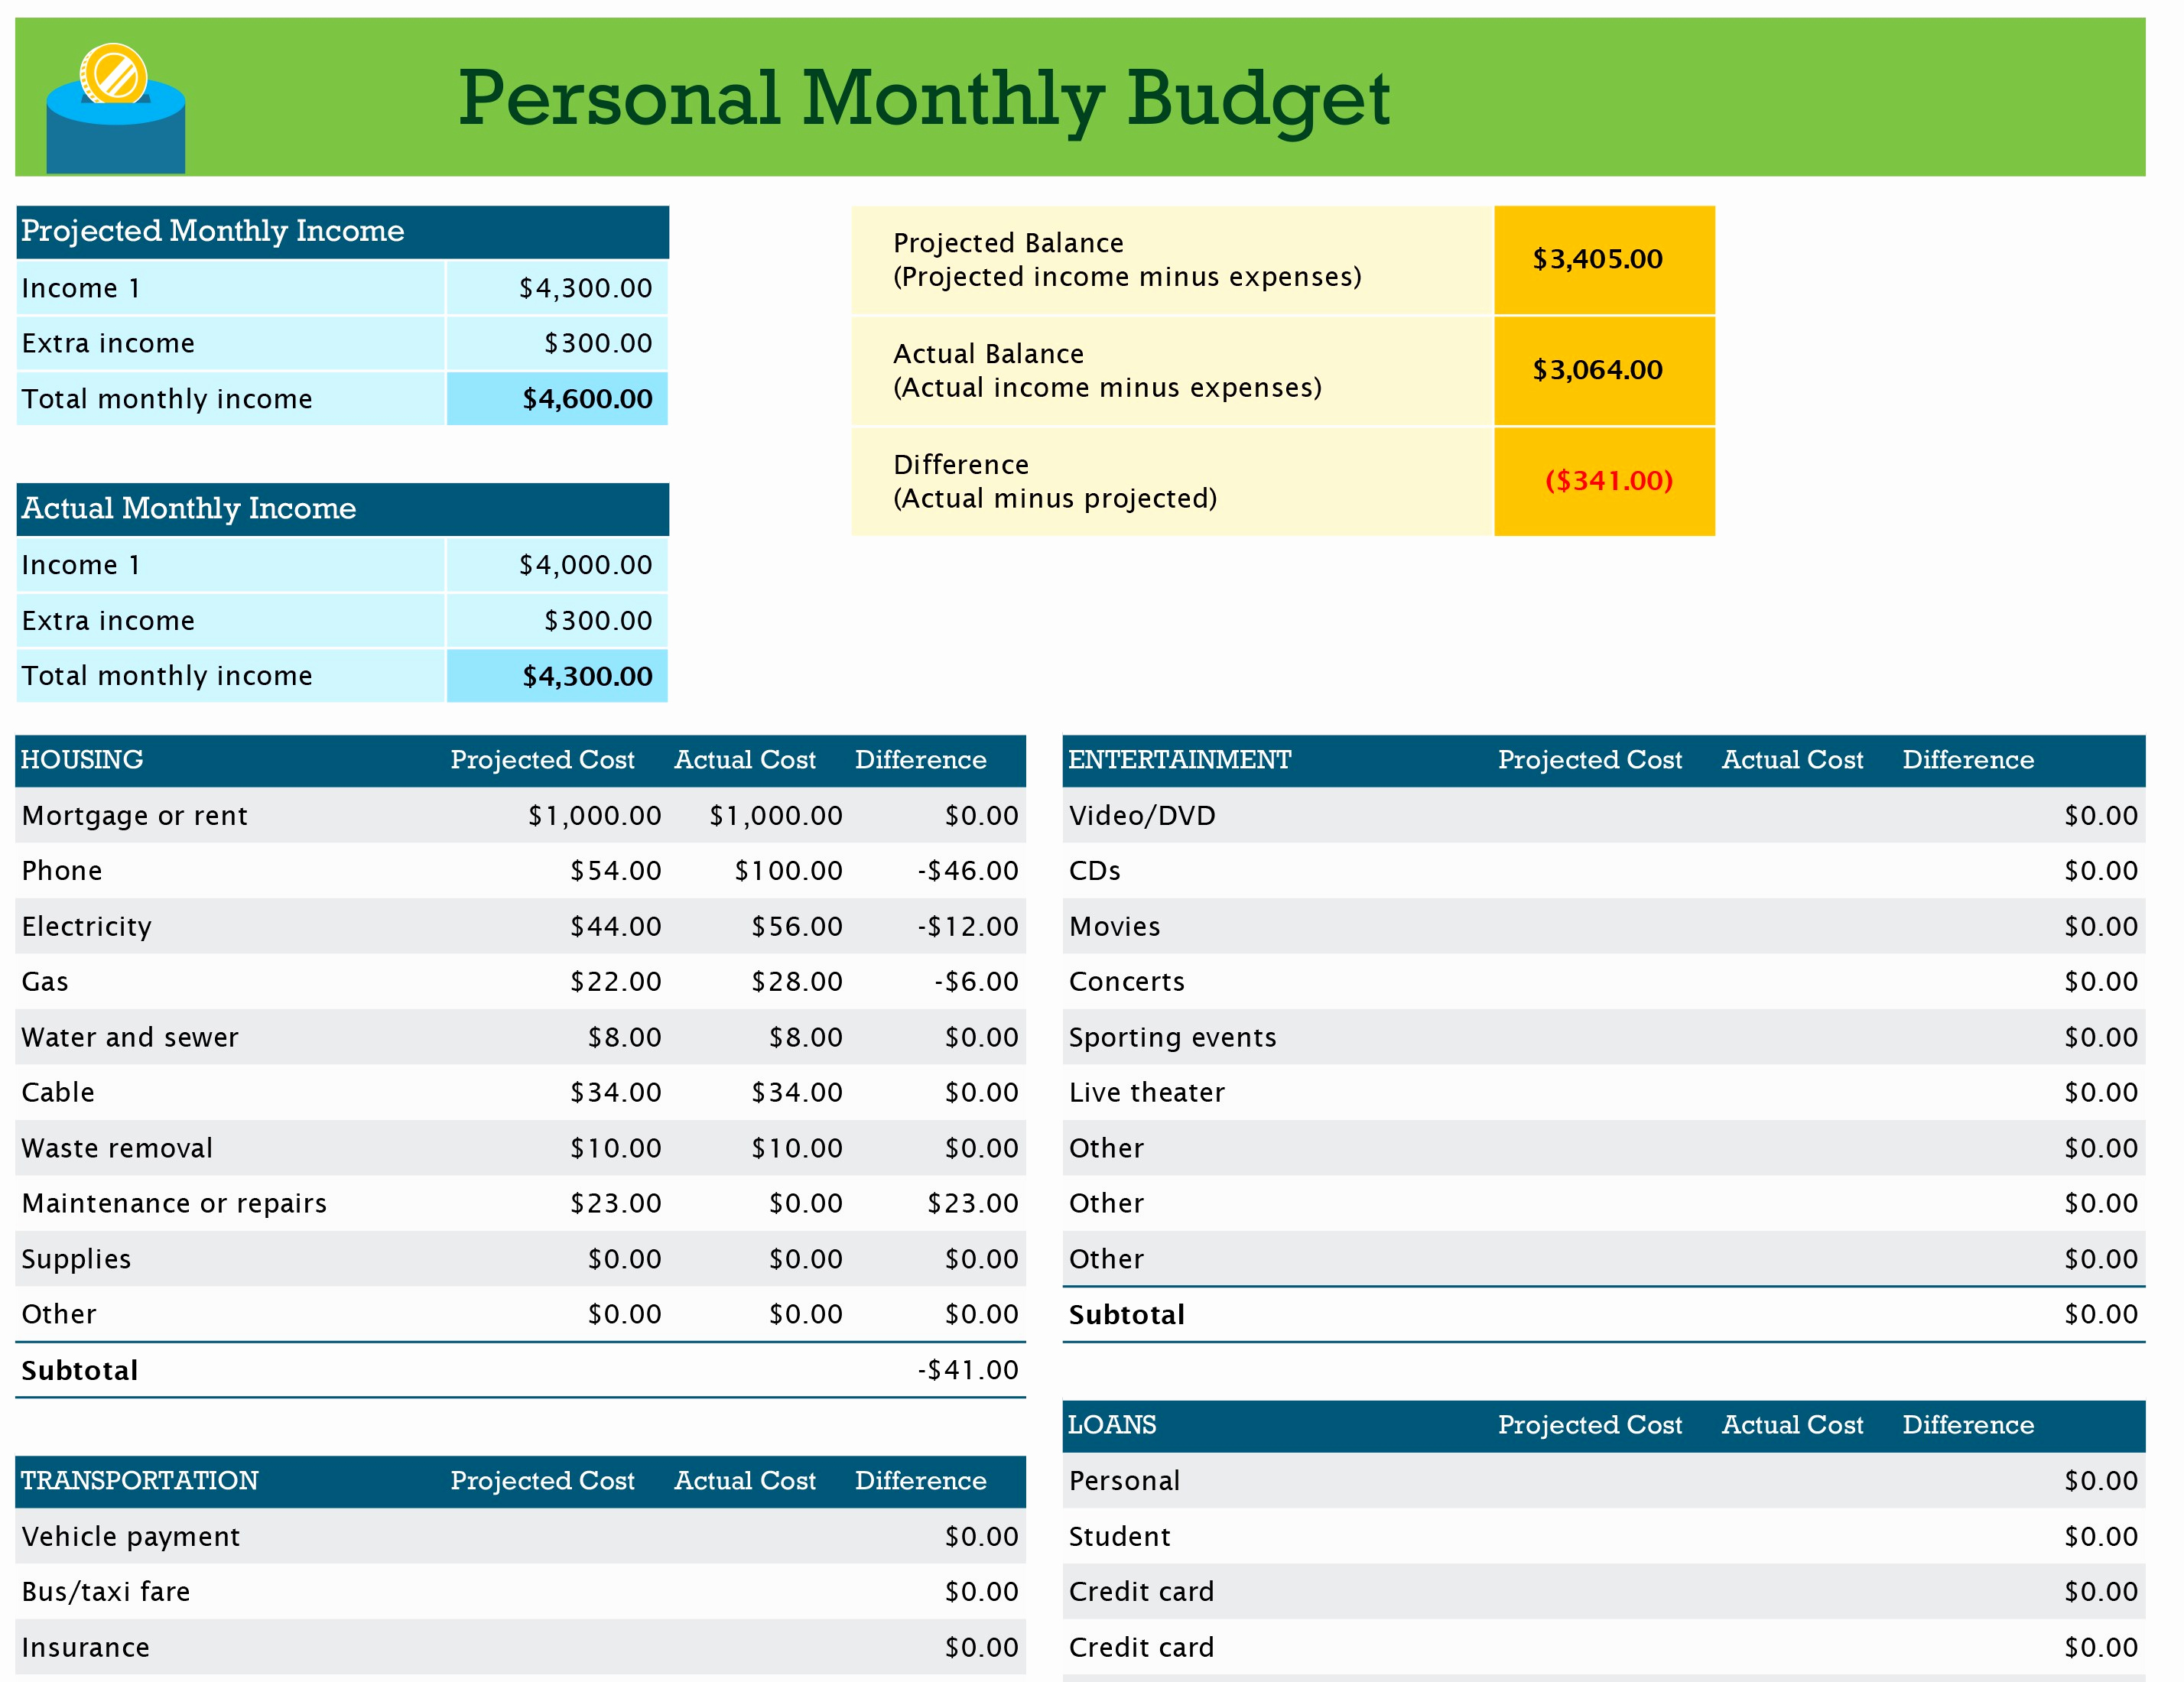 Personal Monthly Budget Template Elegant Personal Monthly Bud